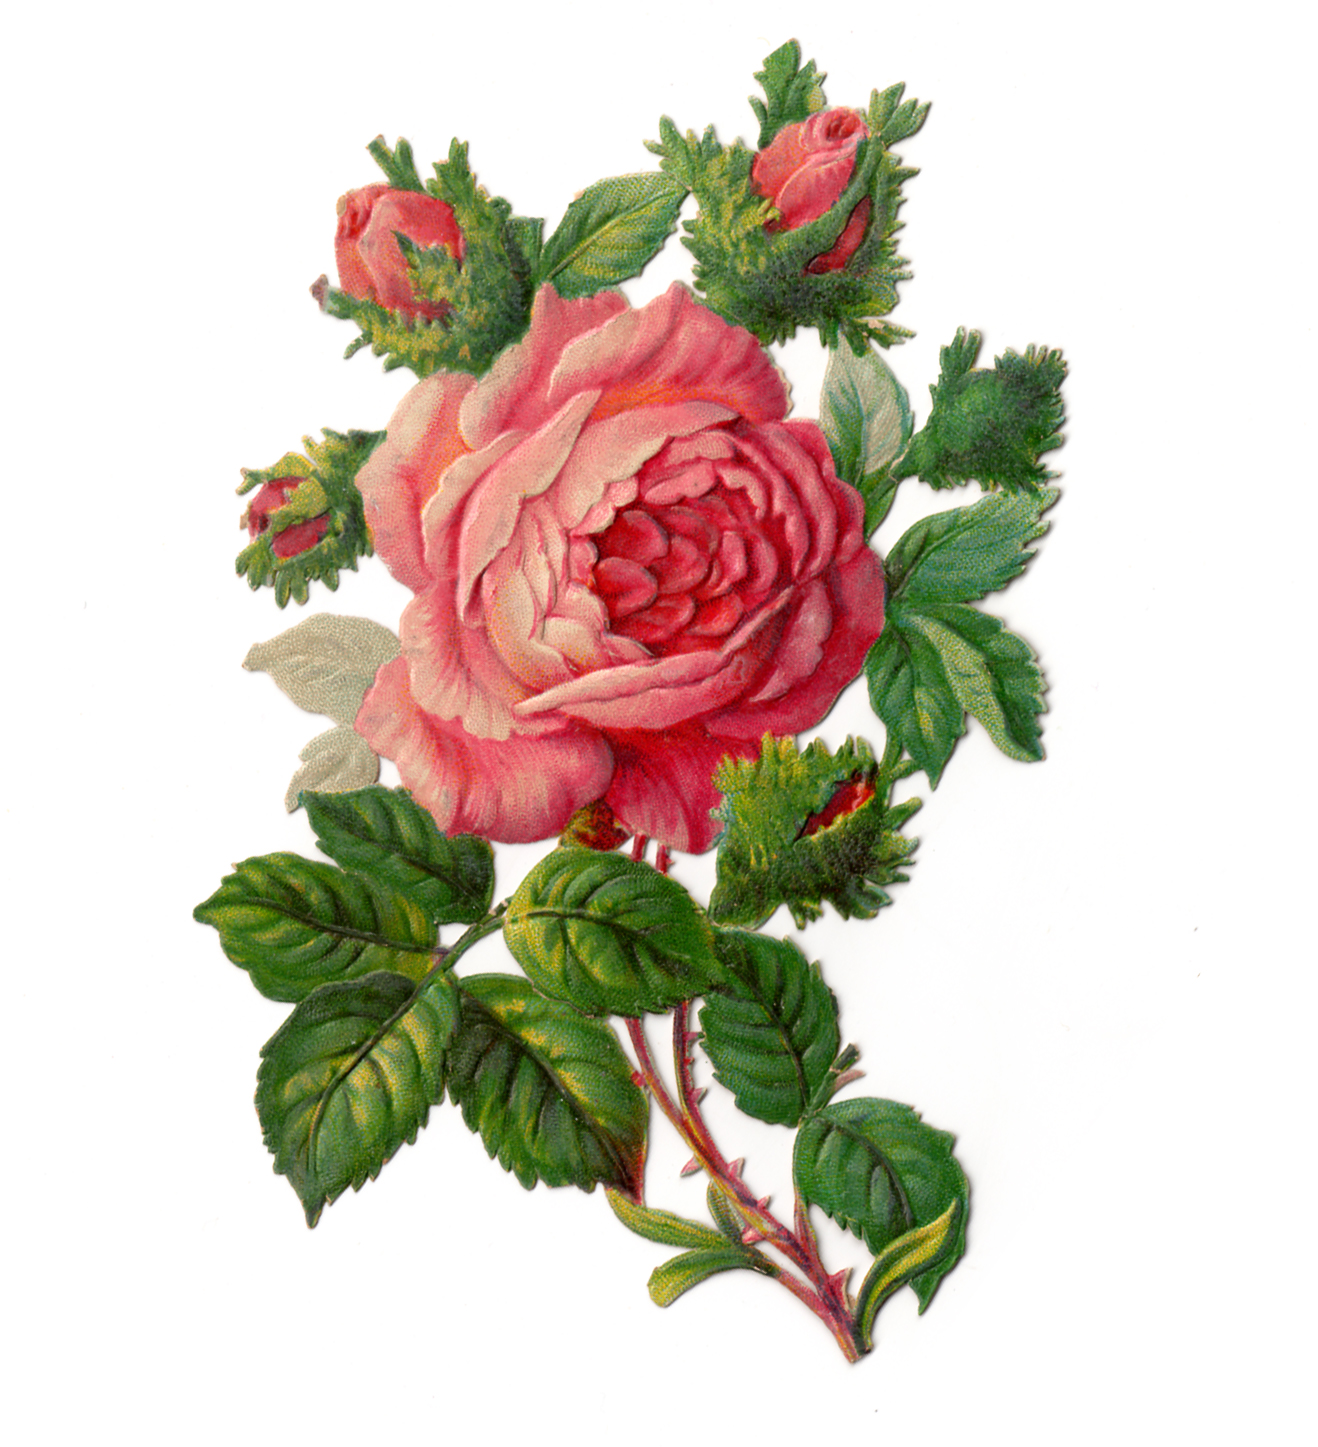 Victorian Rose Borders Clipart - Clipart Kid